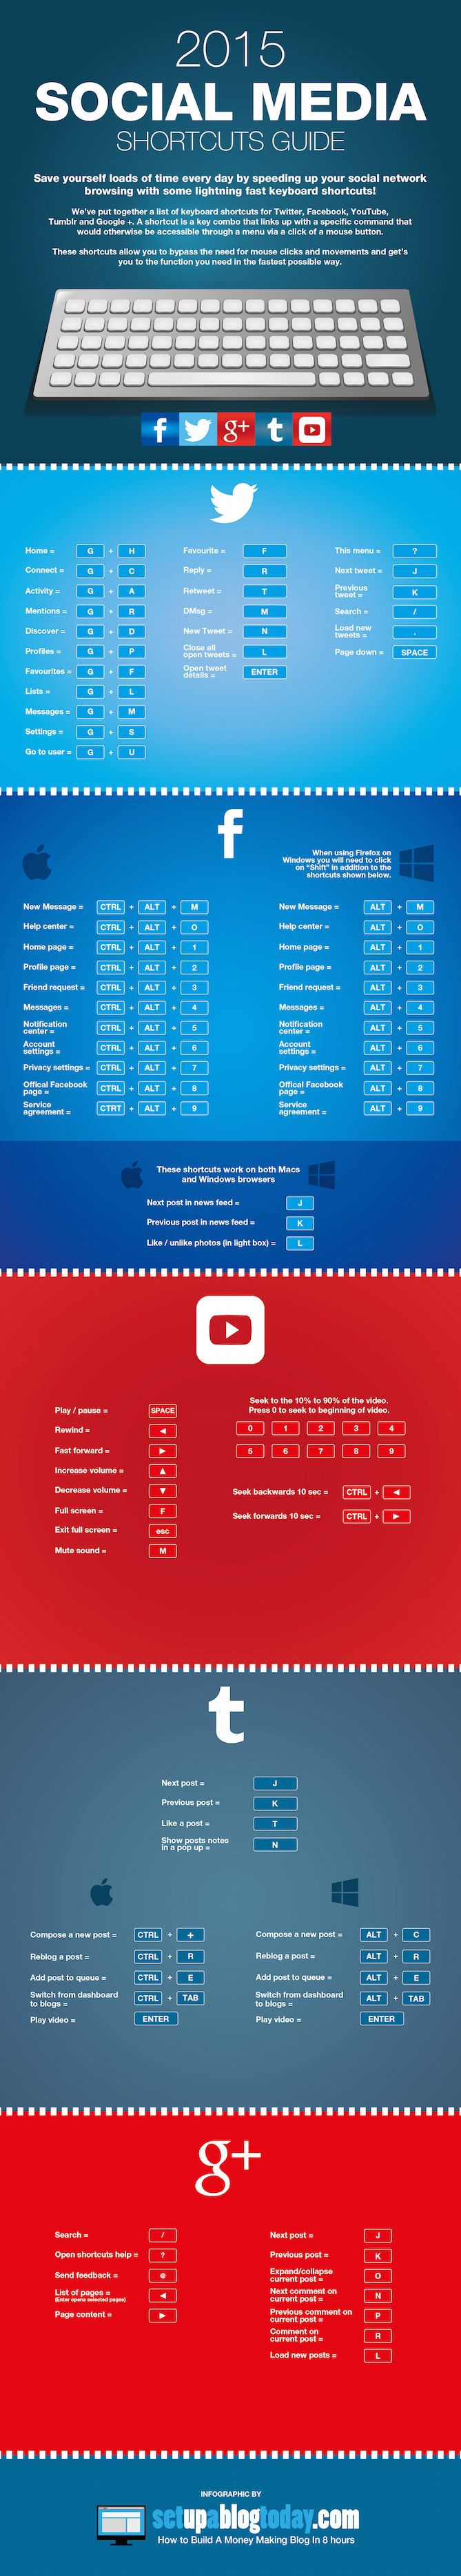 A Simple Guide to Keyboard Shortcuts on Twitter, Facebook & More [Infographic], via @HubSpot